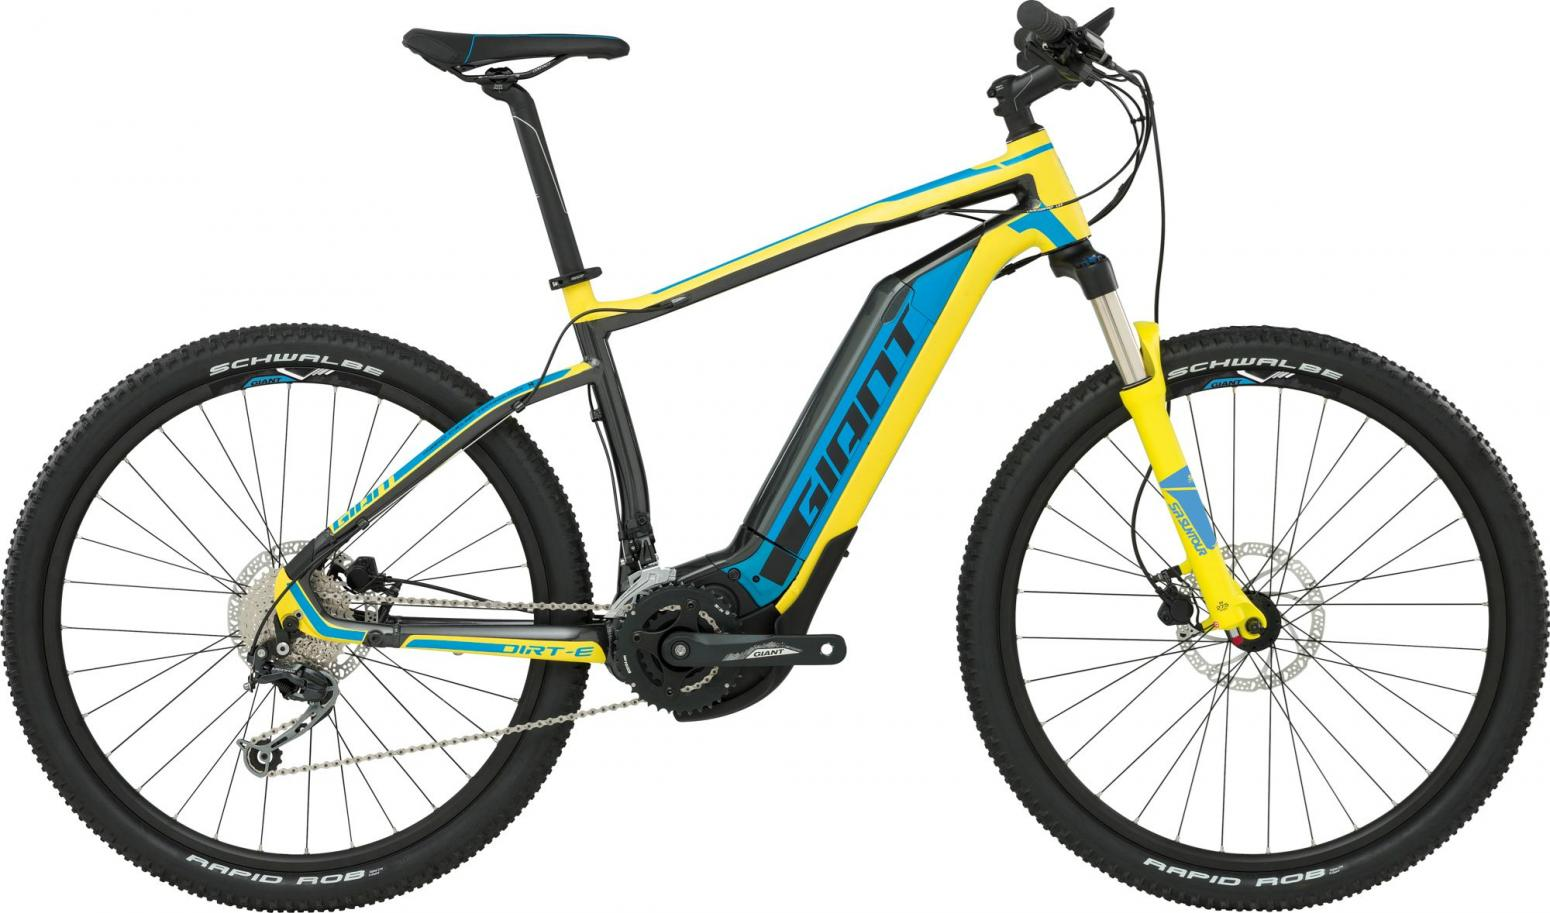 Giant MTB E-Bike Dirt-E+ 2 2016